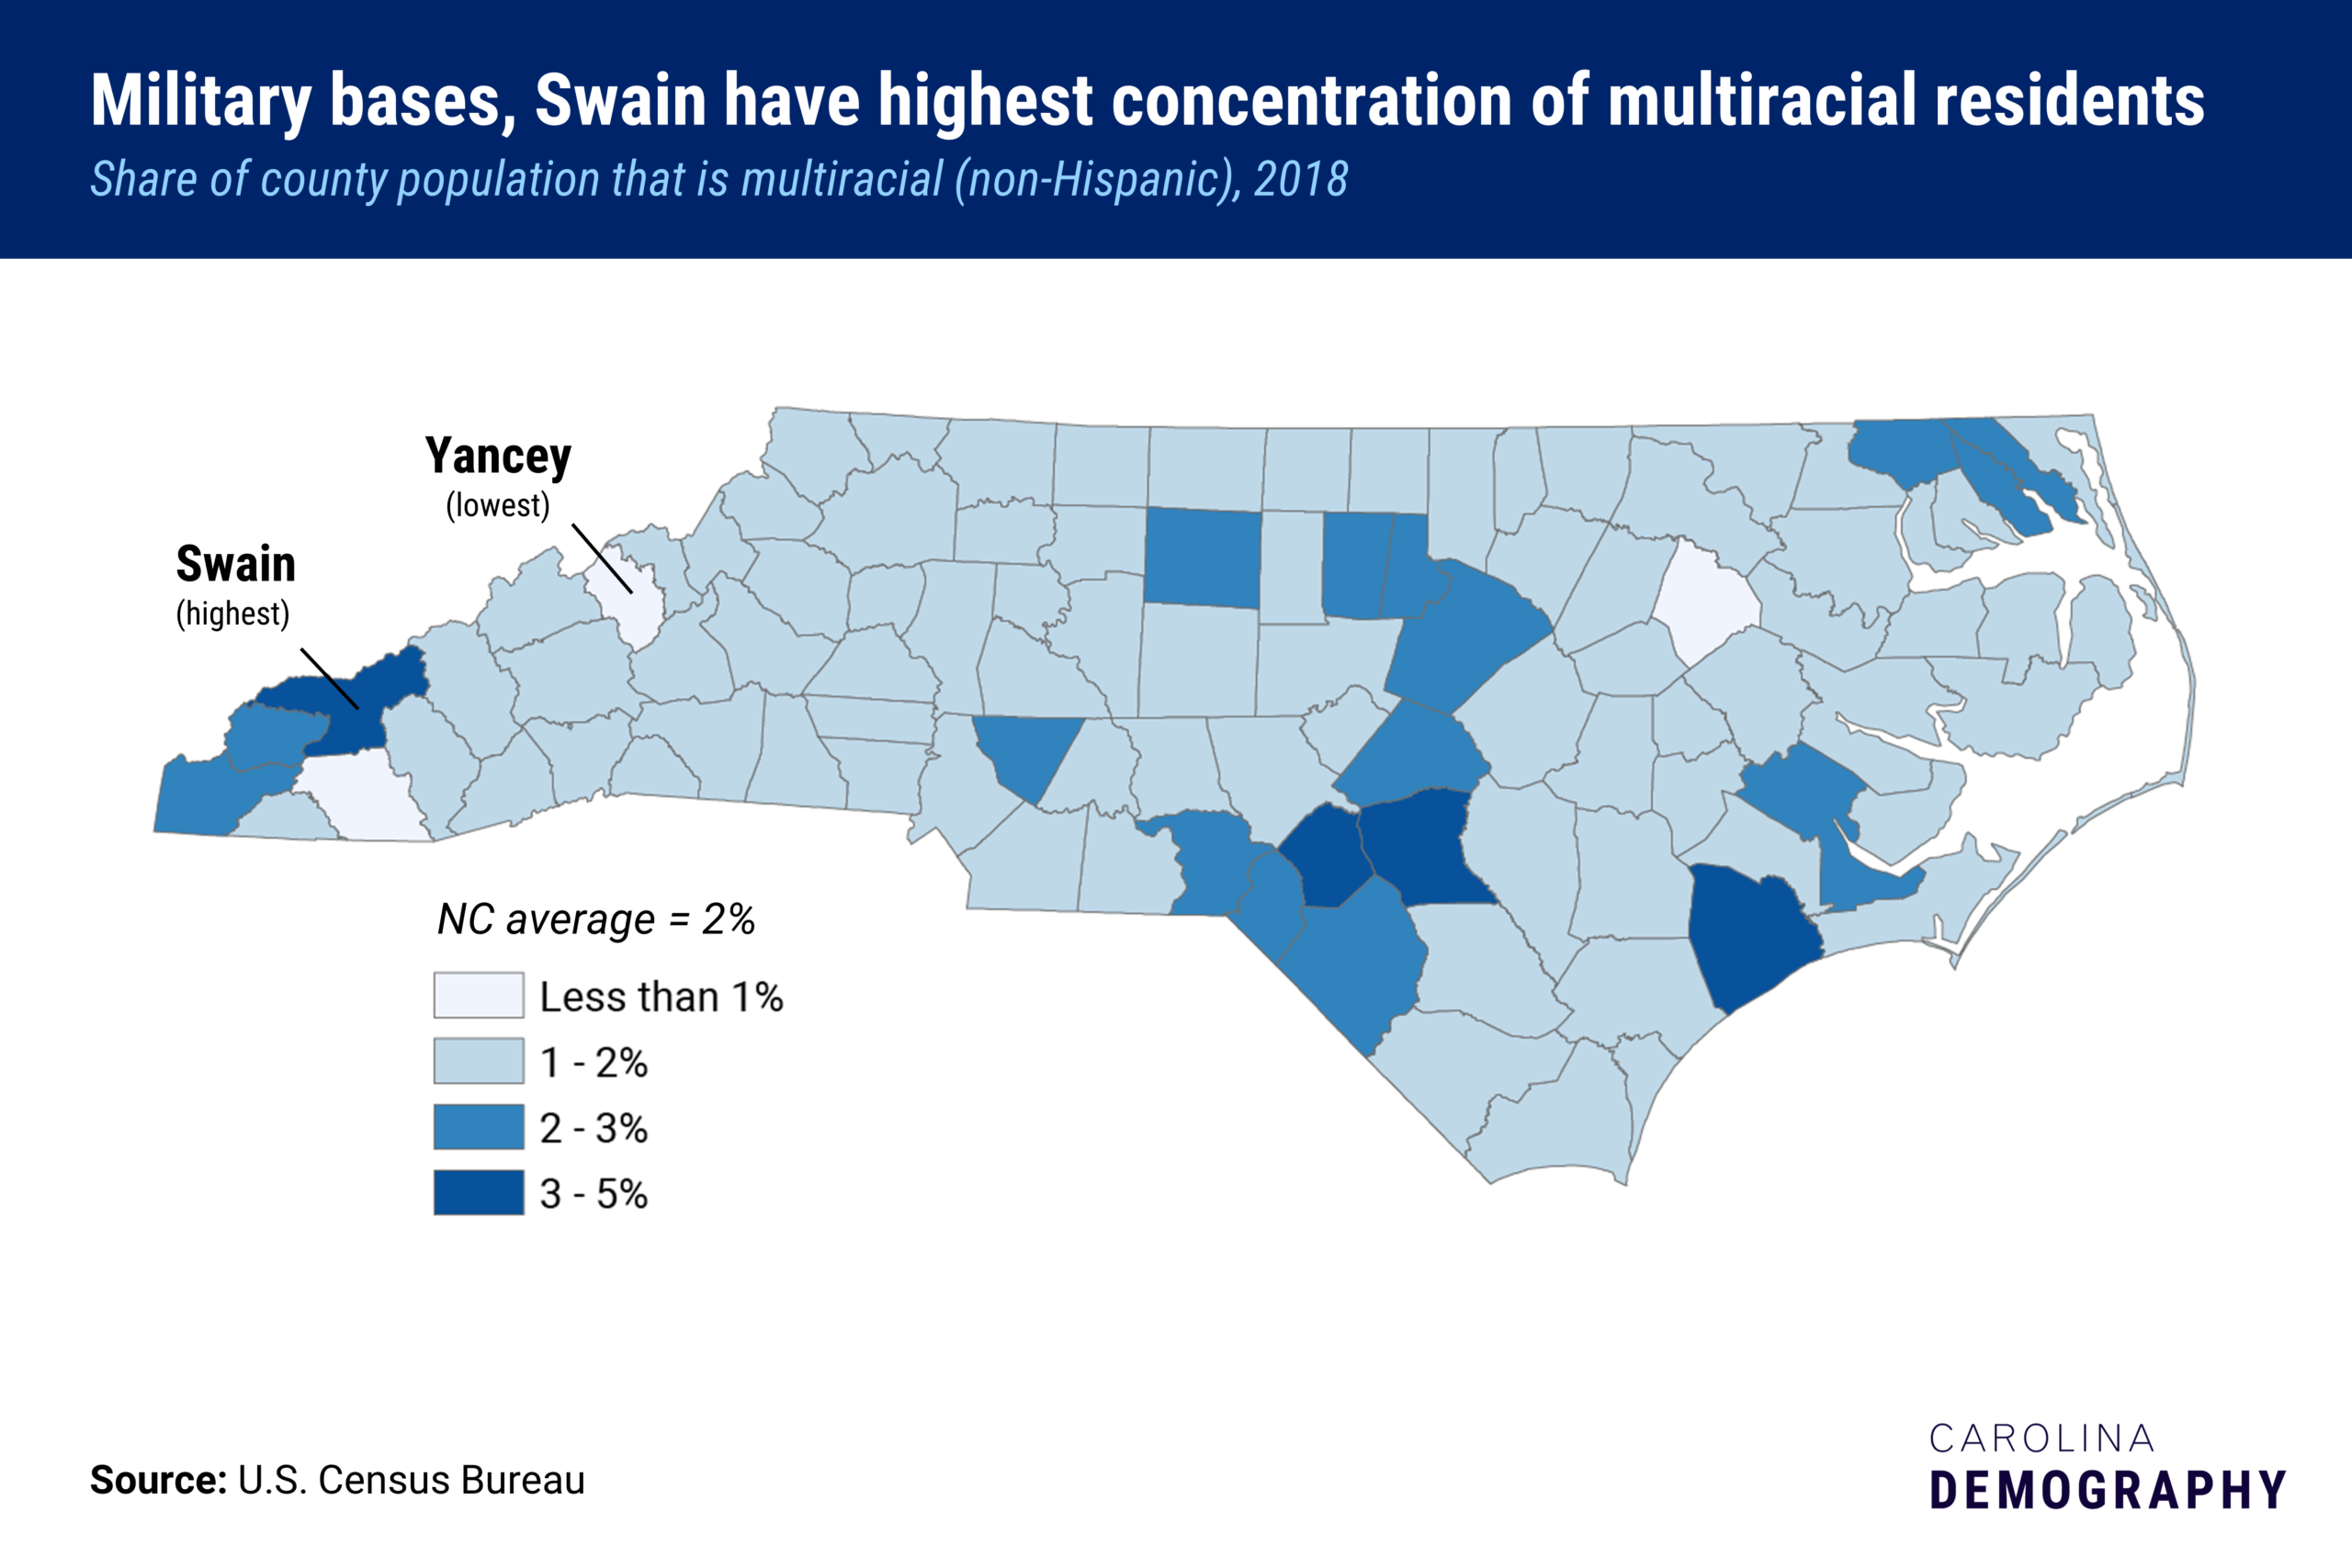 A county map of North Carolina showing the share of county population that is multiracial. Swain county has the highest share, where Yancey county has the lowest. The state average is 2 percent.